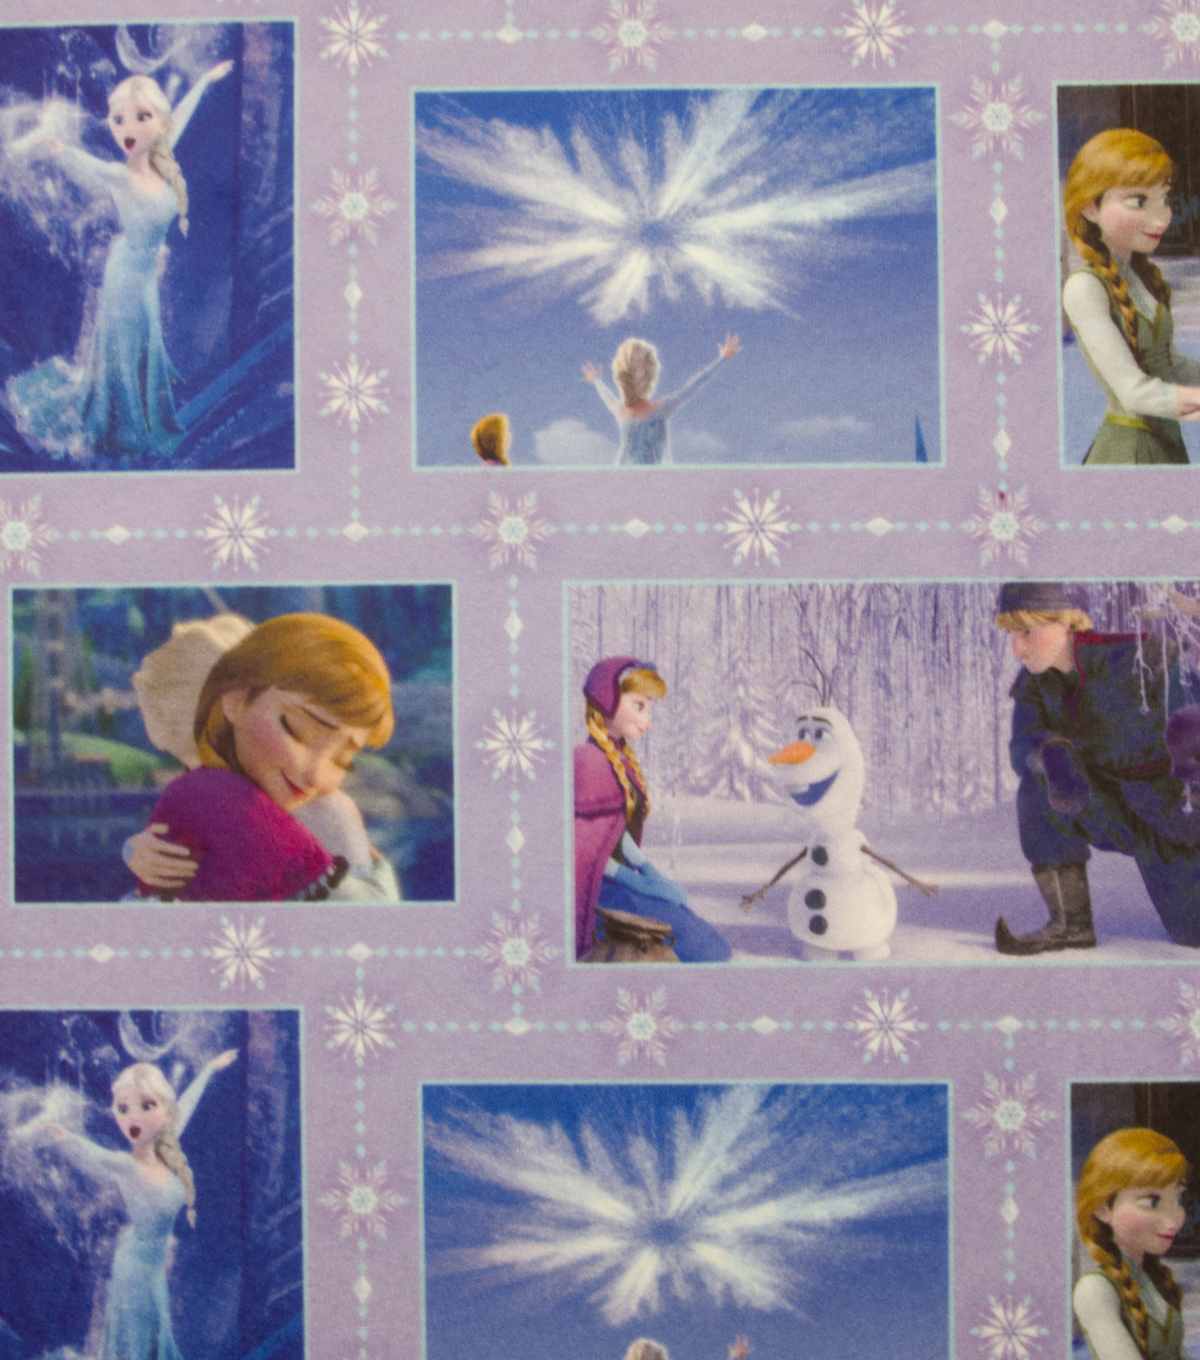 Disney Frozen Movie Patch Sweatshirt Fleece Fabric